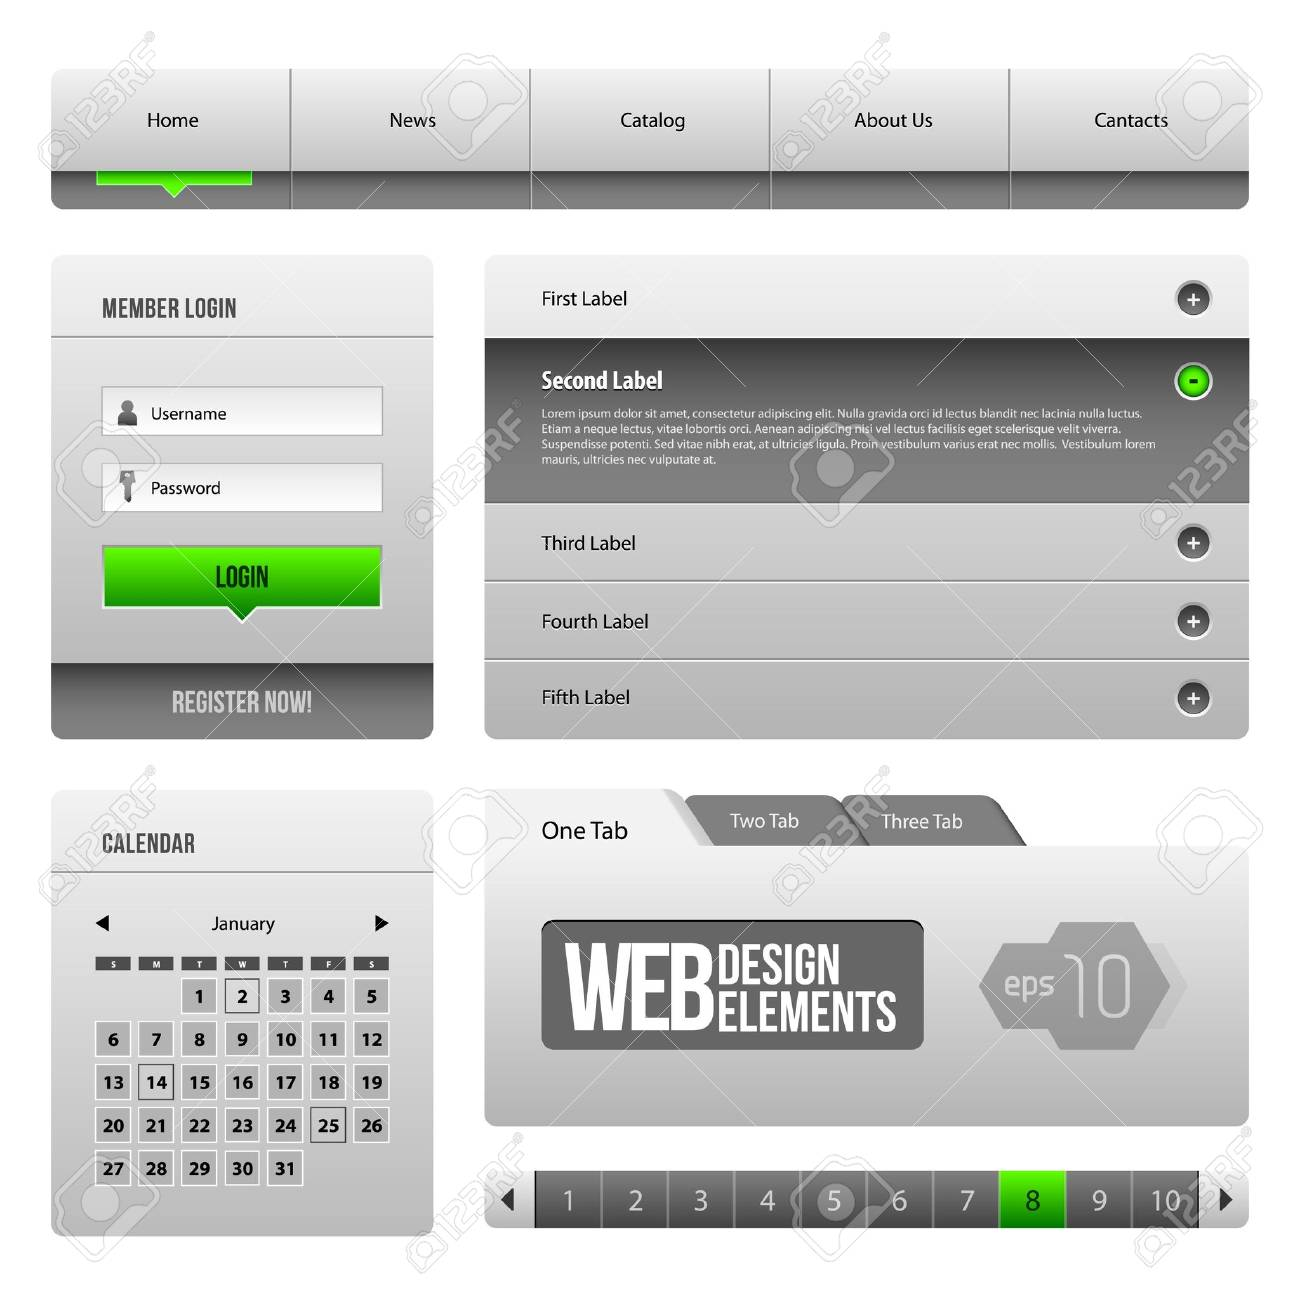 Modern Clean Website Design Elements Grey Green Gray 3: Buttons, Form, Slider, Scroll, Carousel, Icons, Menu, Navigation Bar, Download, Pagination, Video, Player, Tab, Accordion, Search, Stock Vector - 14668555